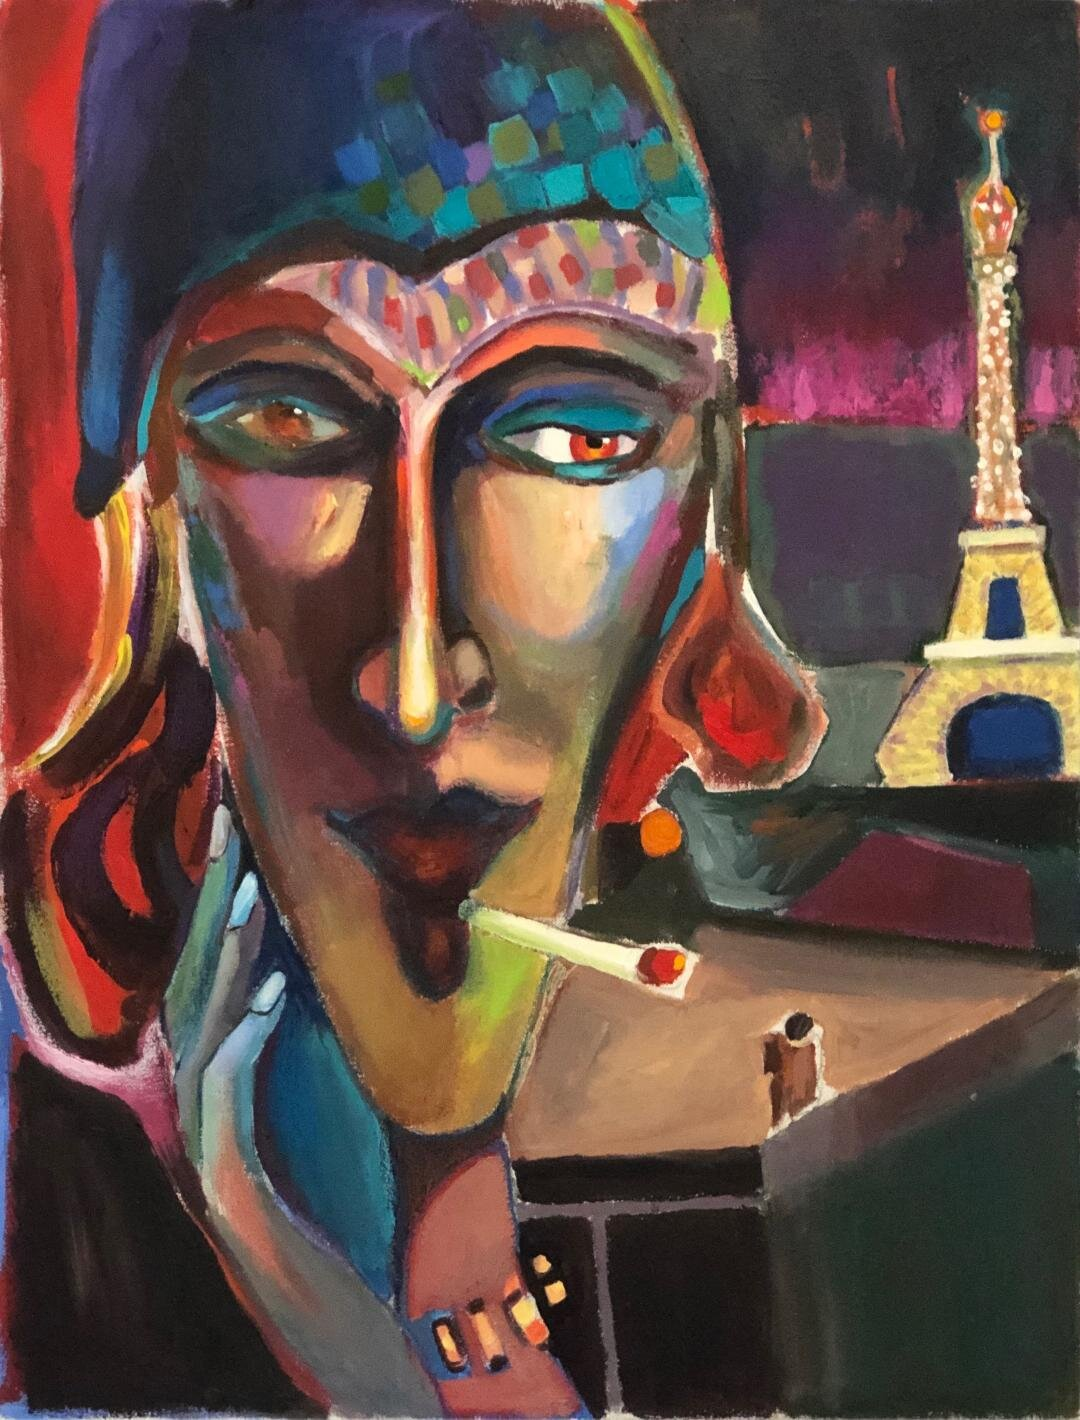 Abstract portraiture of a Parisian woman smoking a cigarette. Blue, red, yellow on the face and the Eiffel tower on purple background.